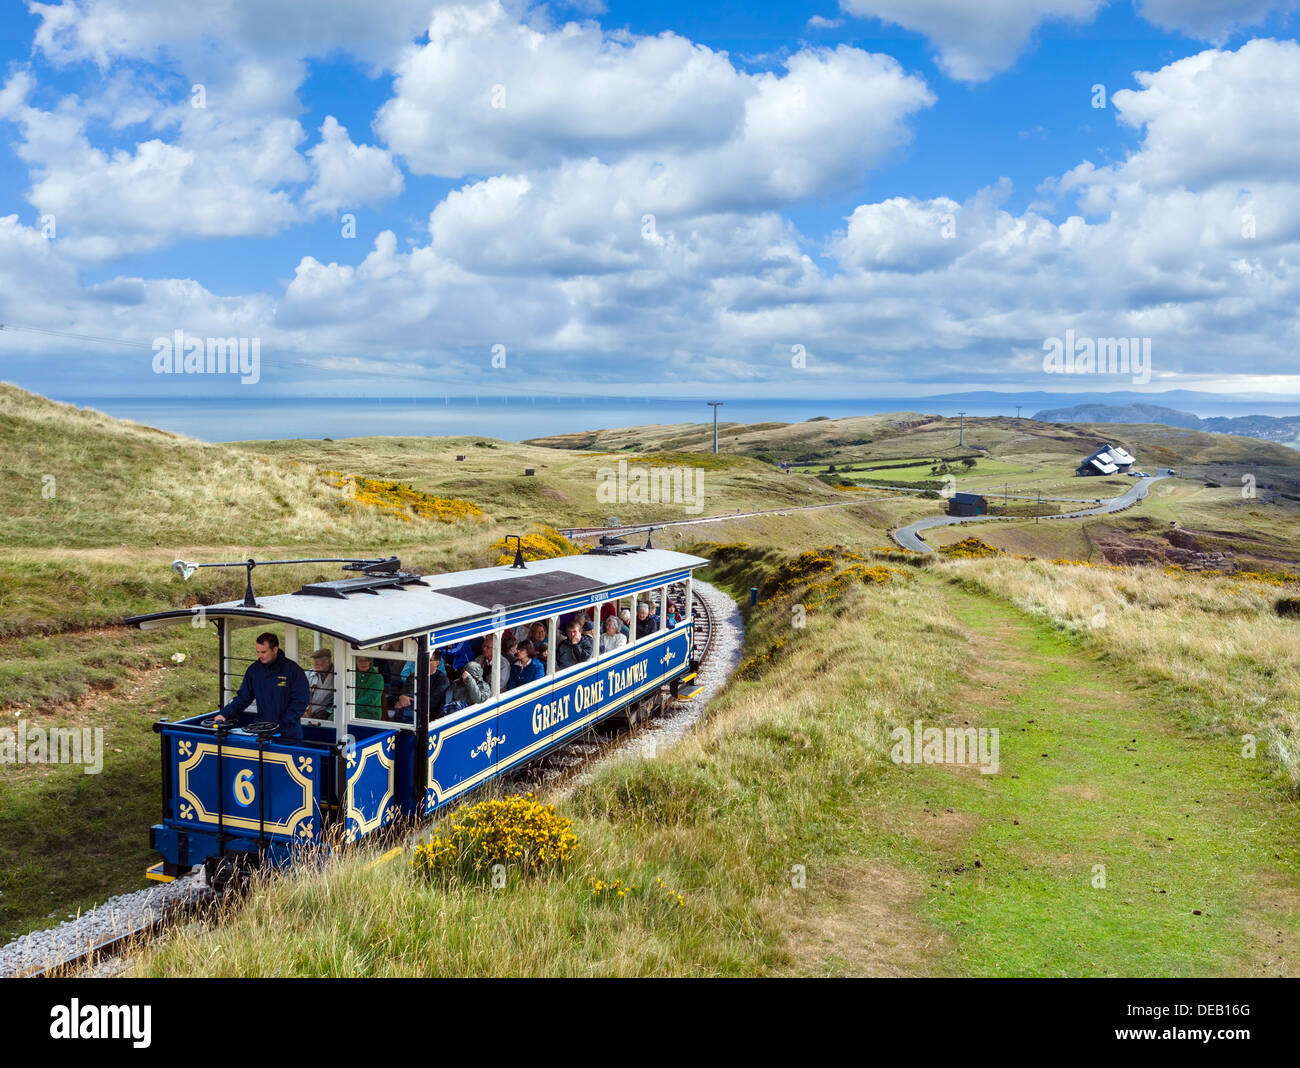 Upper section of The Great Orme Tramway looking down towards the town, The Great Orme, Llandudno, Conwy, North Wales, Stock Photo